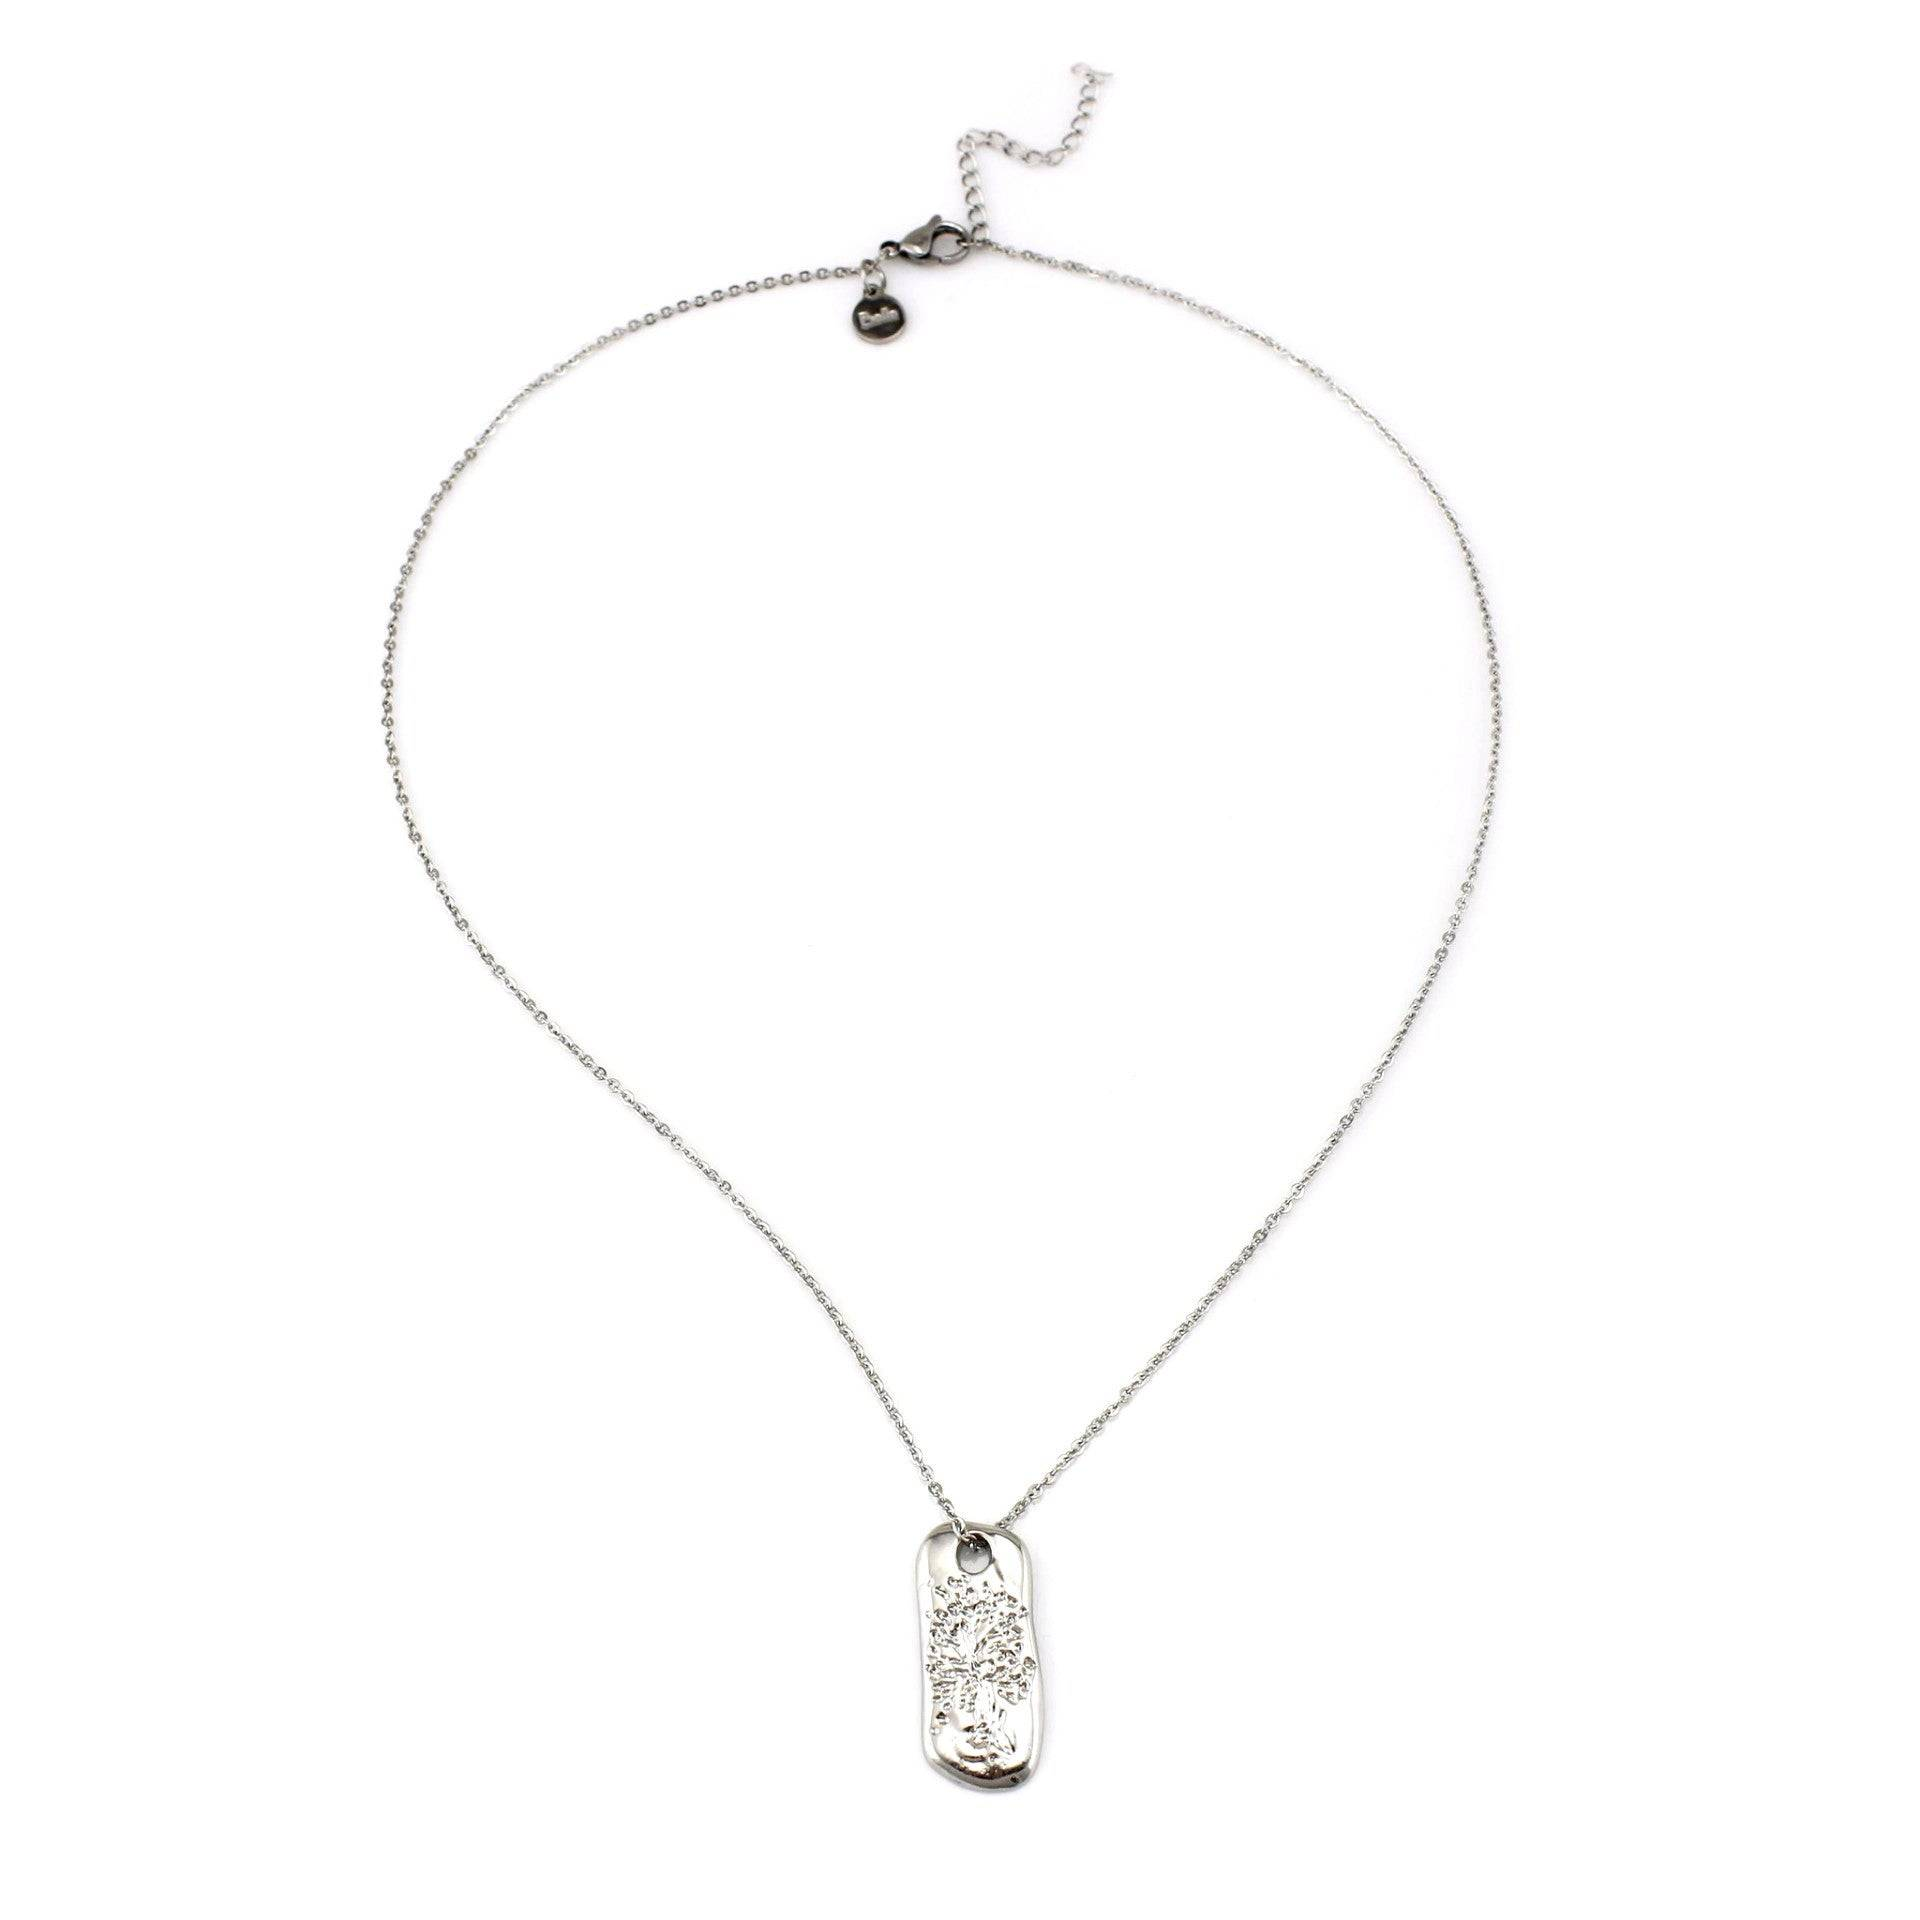 Balla Silver Tree Of Life Pendant Necklace with Stainless Steel Chain